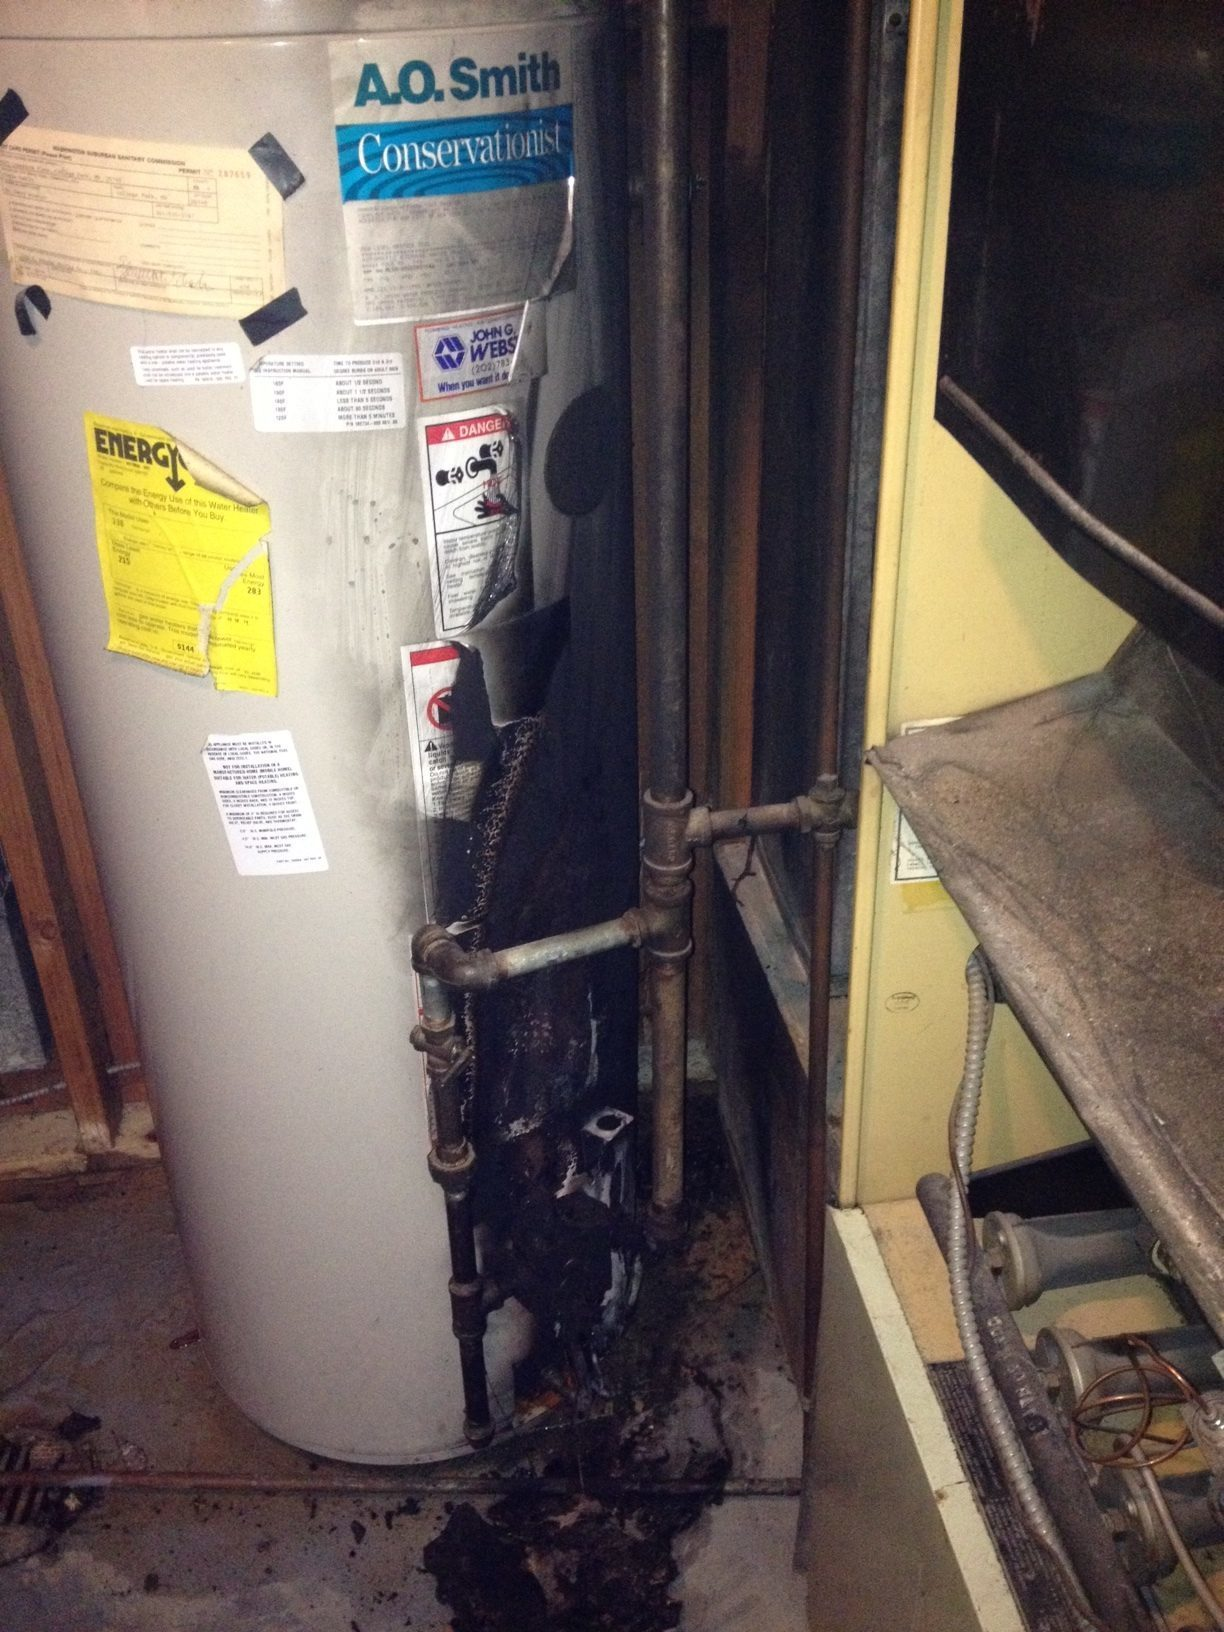 top 413 reviews and complaints about a o smith water heaters page 5 - Gas Water Heater Reviews